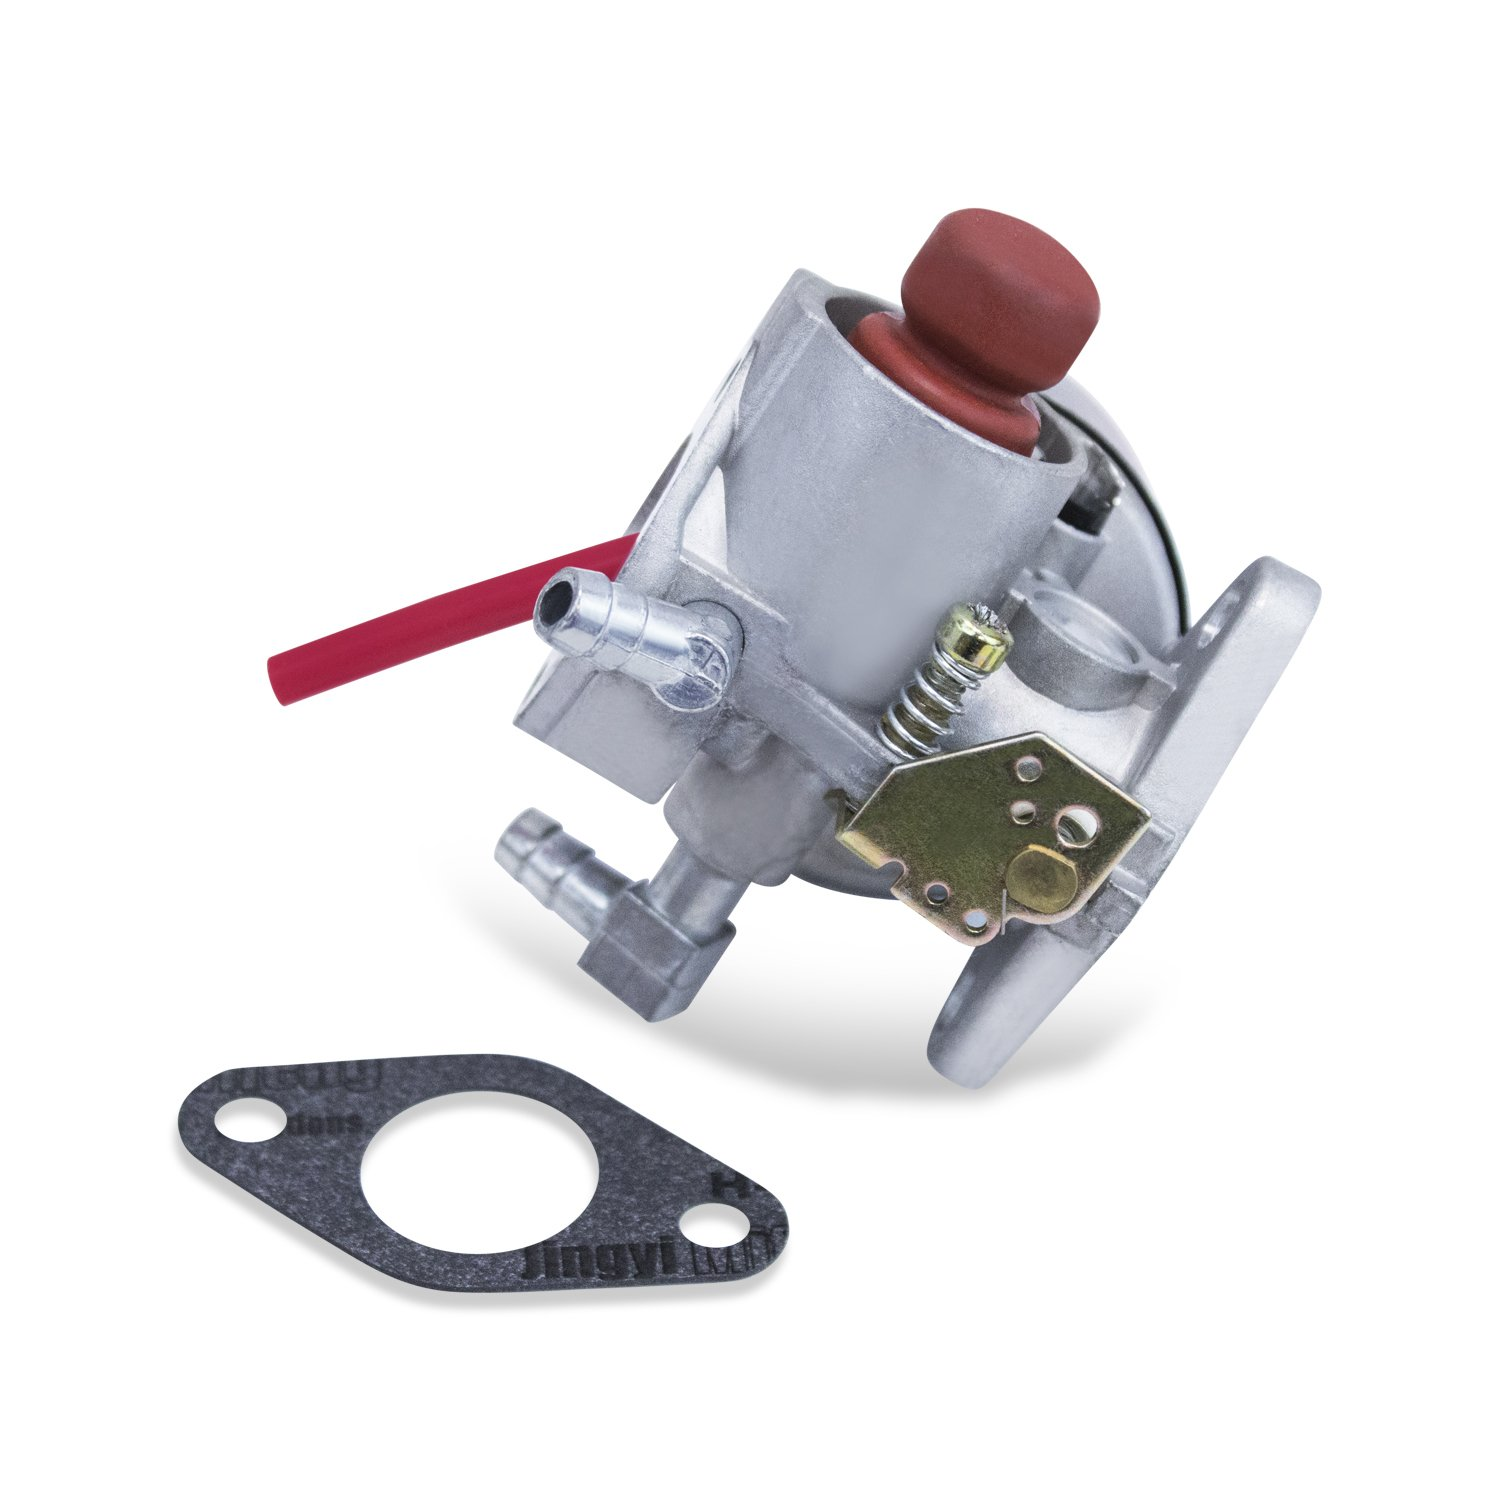 Tecumseh Carburetor Fits Sears Craftsman Yardmachines 6 5 Hp Diagram Mtd 625 65 675 Garden Outdoor